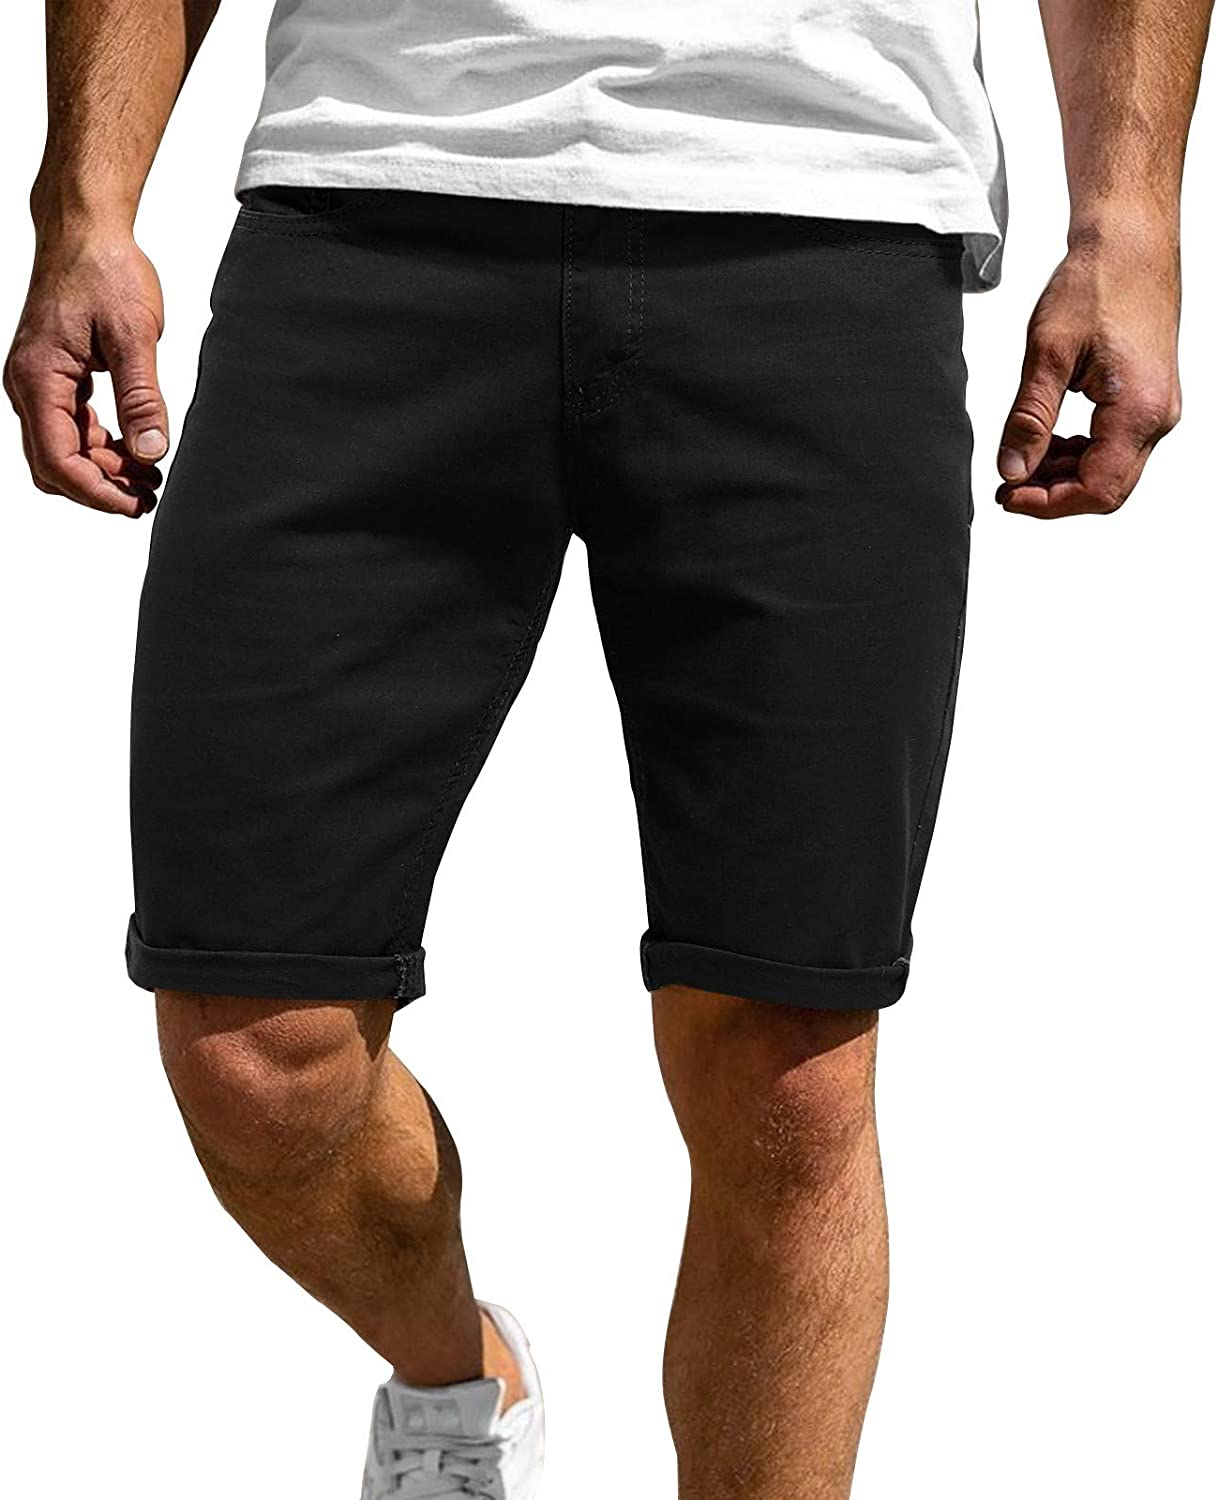 LEIYAN Mens 5 Inch Inseam Shorts Casual Elastic Waist Loose Fit Active Gym Workout Training Lounge Shorts Joggers